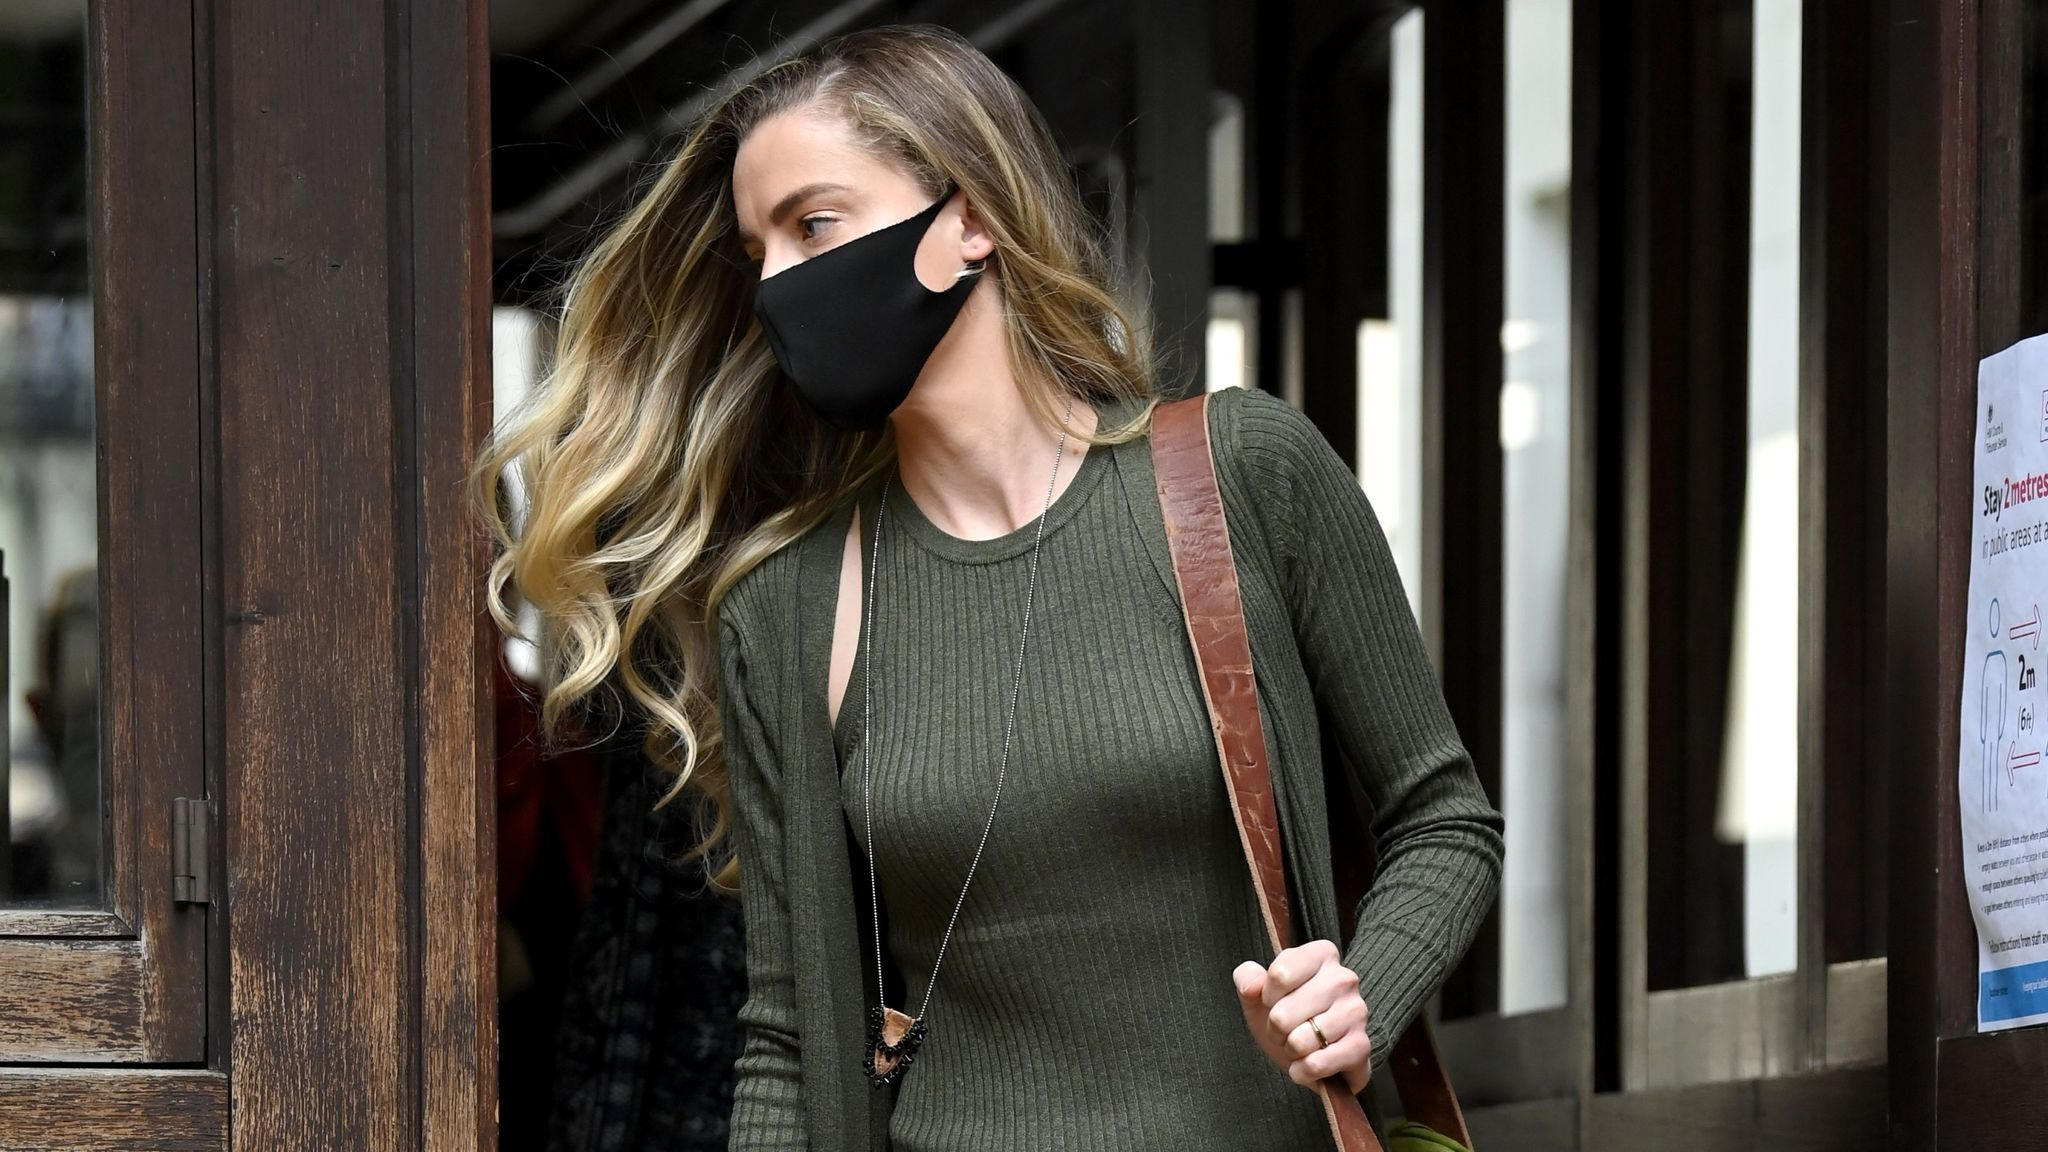 Whitney Heard, sister of Amber Heard, attends day 5 of Johnny Depp's libel case against The Sun Newspaper at the Royal Courts of Justice, Strand on July 13, 2020 in London, England. The Hollywood actor is taking News Group Newspapers, publishers of The Sun, to court over allegations that he was violent towards his ex-wife, Amber Heard